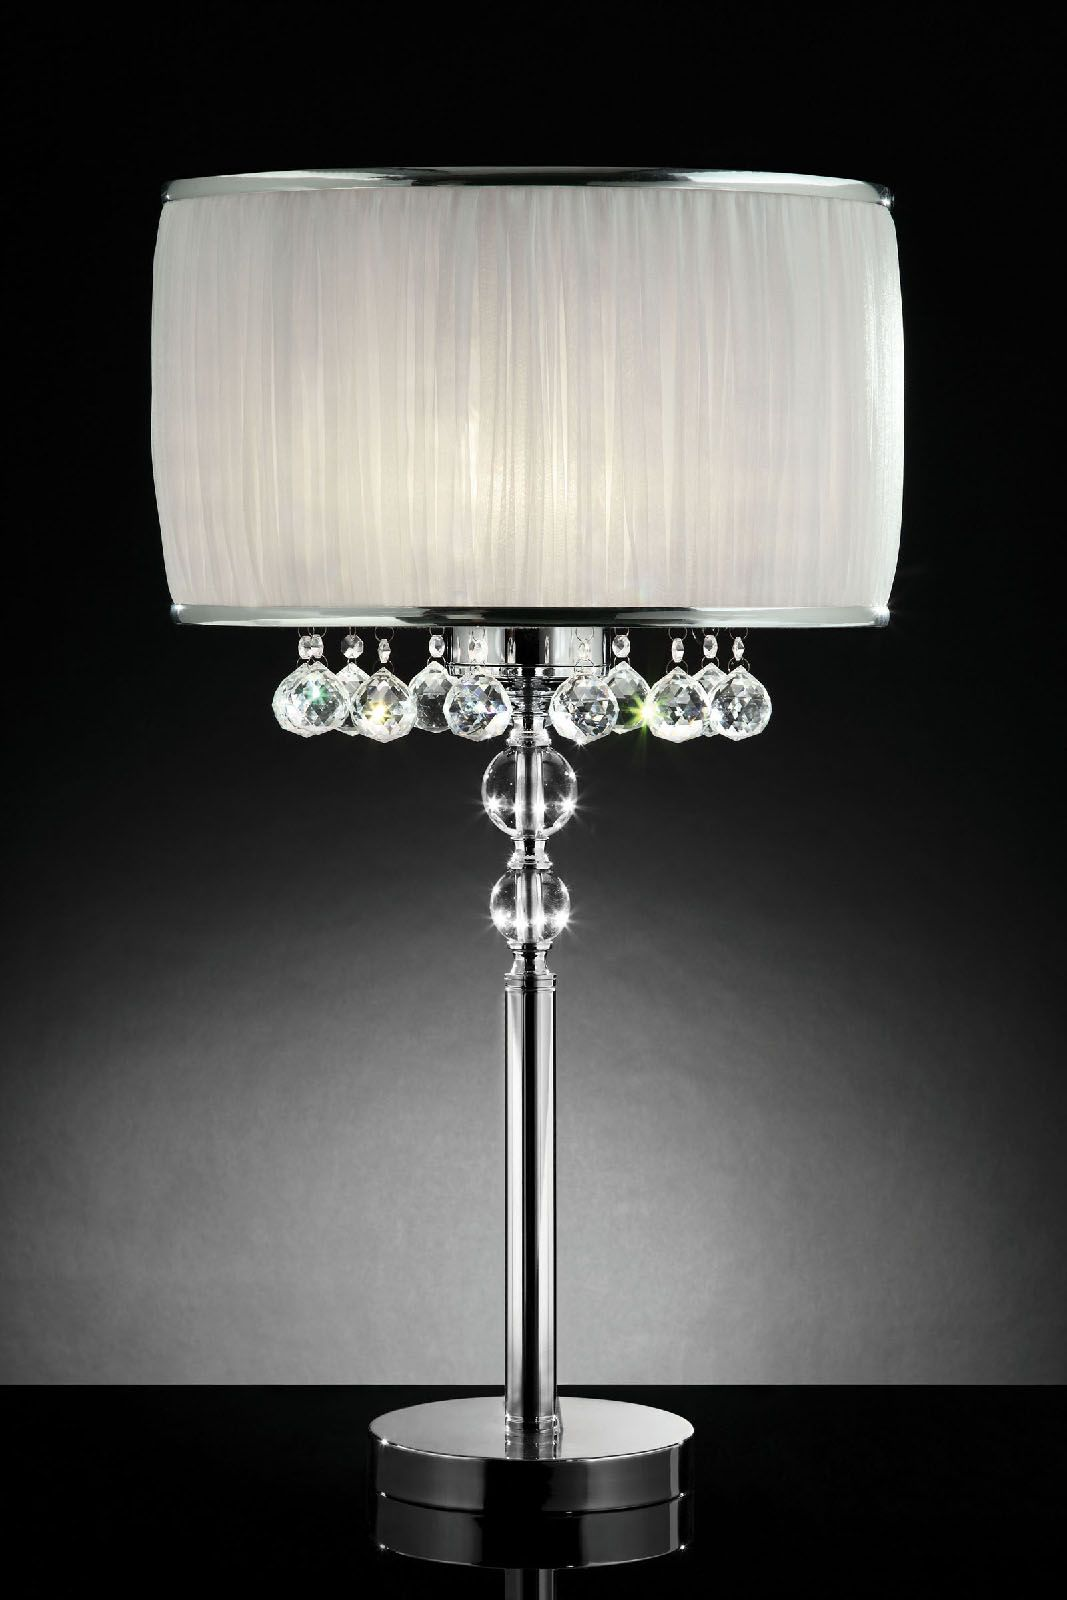 Helen L95139t Table Lamp Crystal Table Lamps Table Lamp Chrome Table Lamp